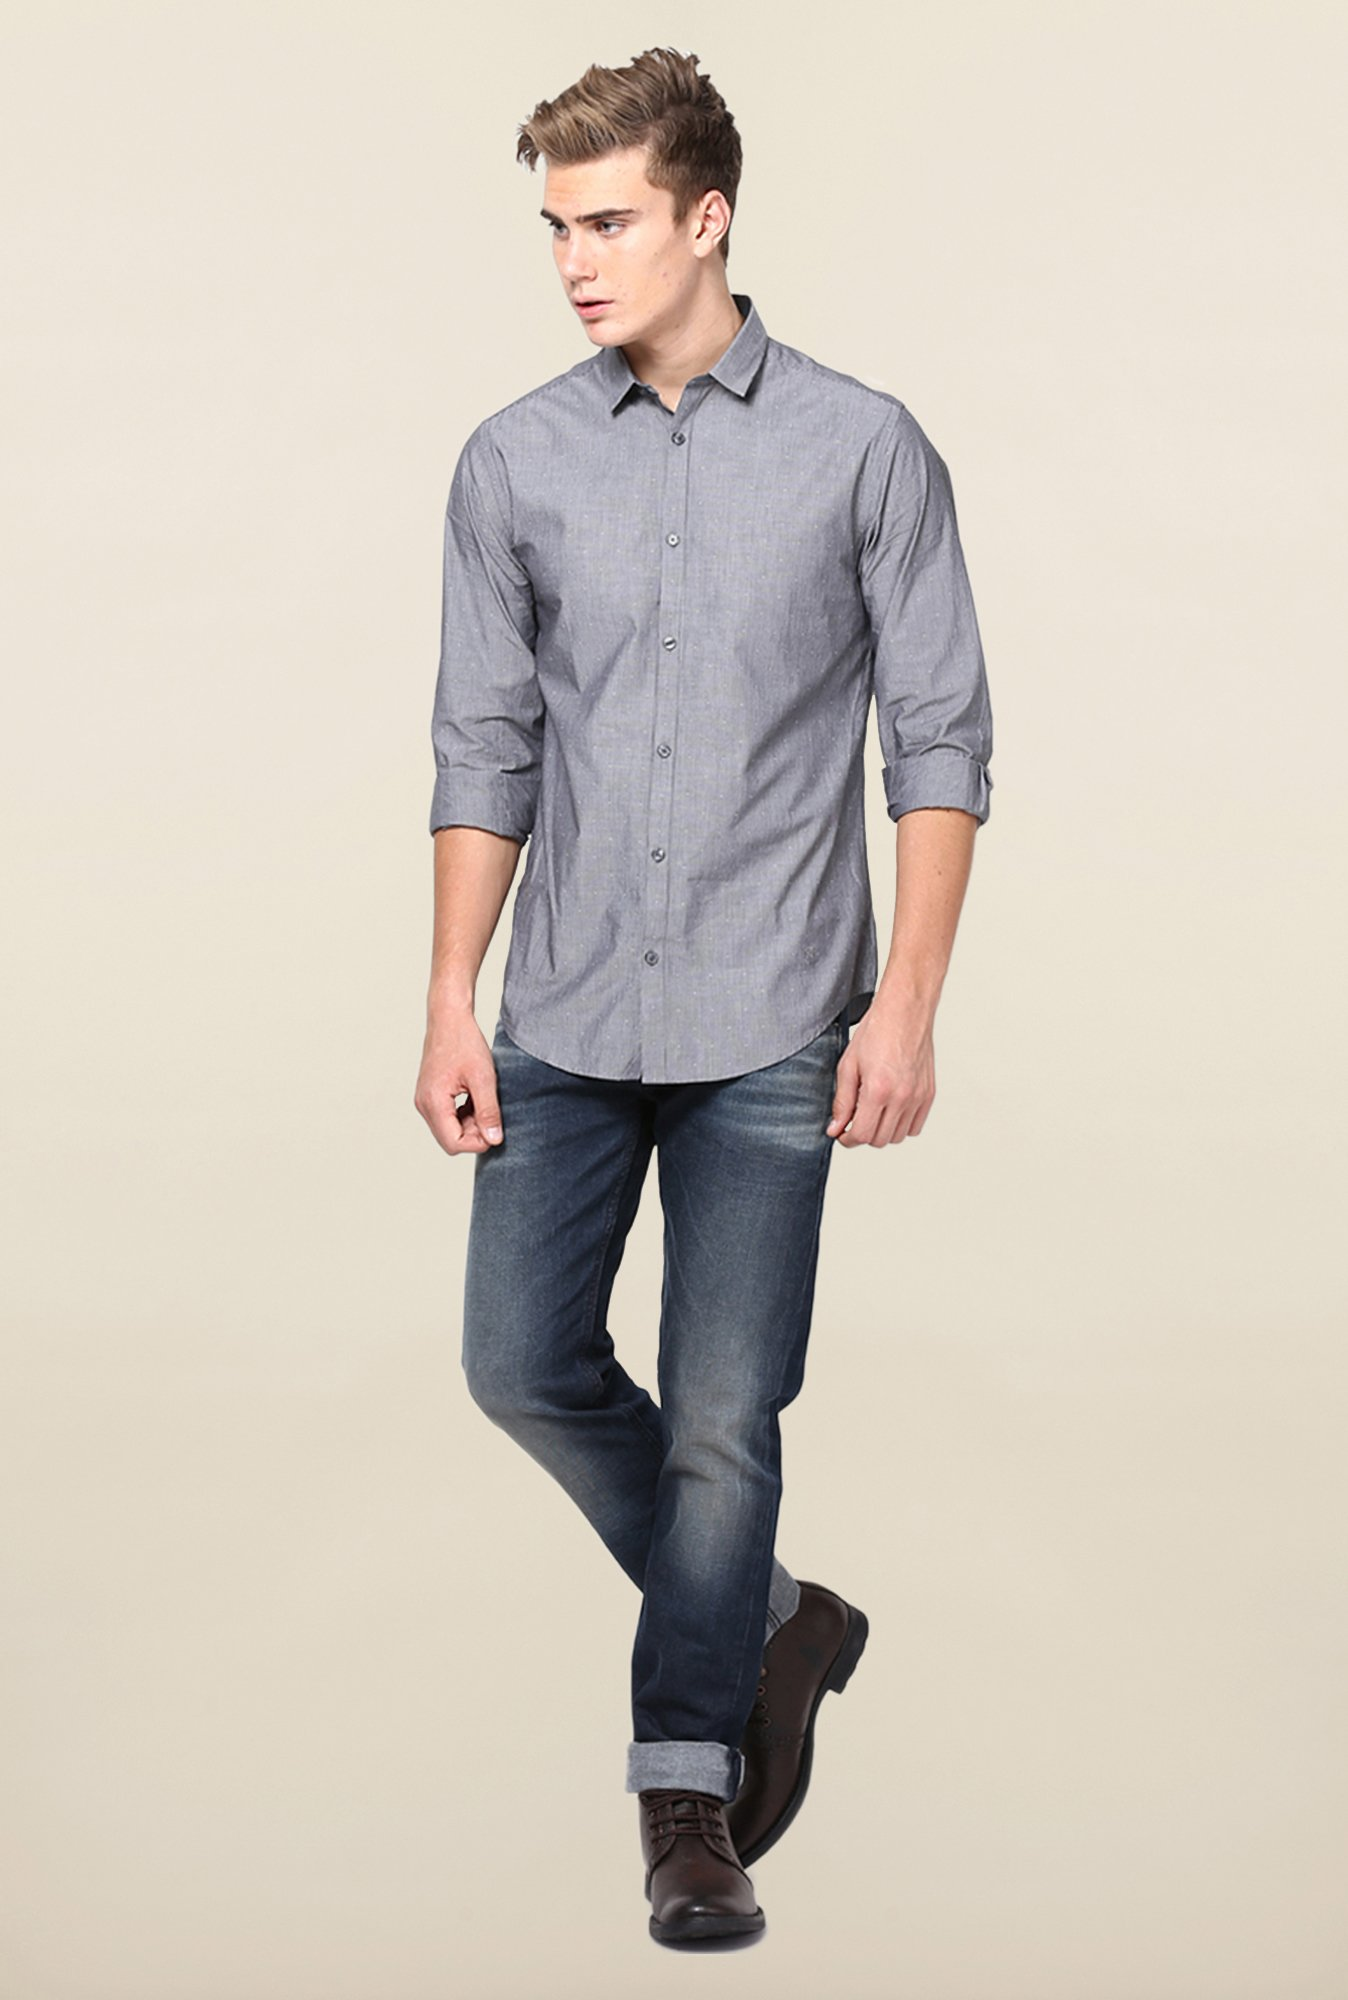 Jack & Jones Grey Pin Stripes Casual Shirt